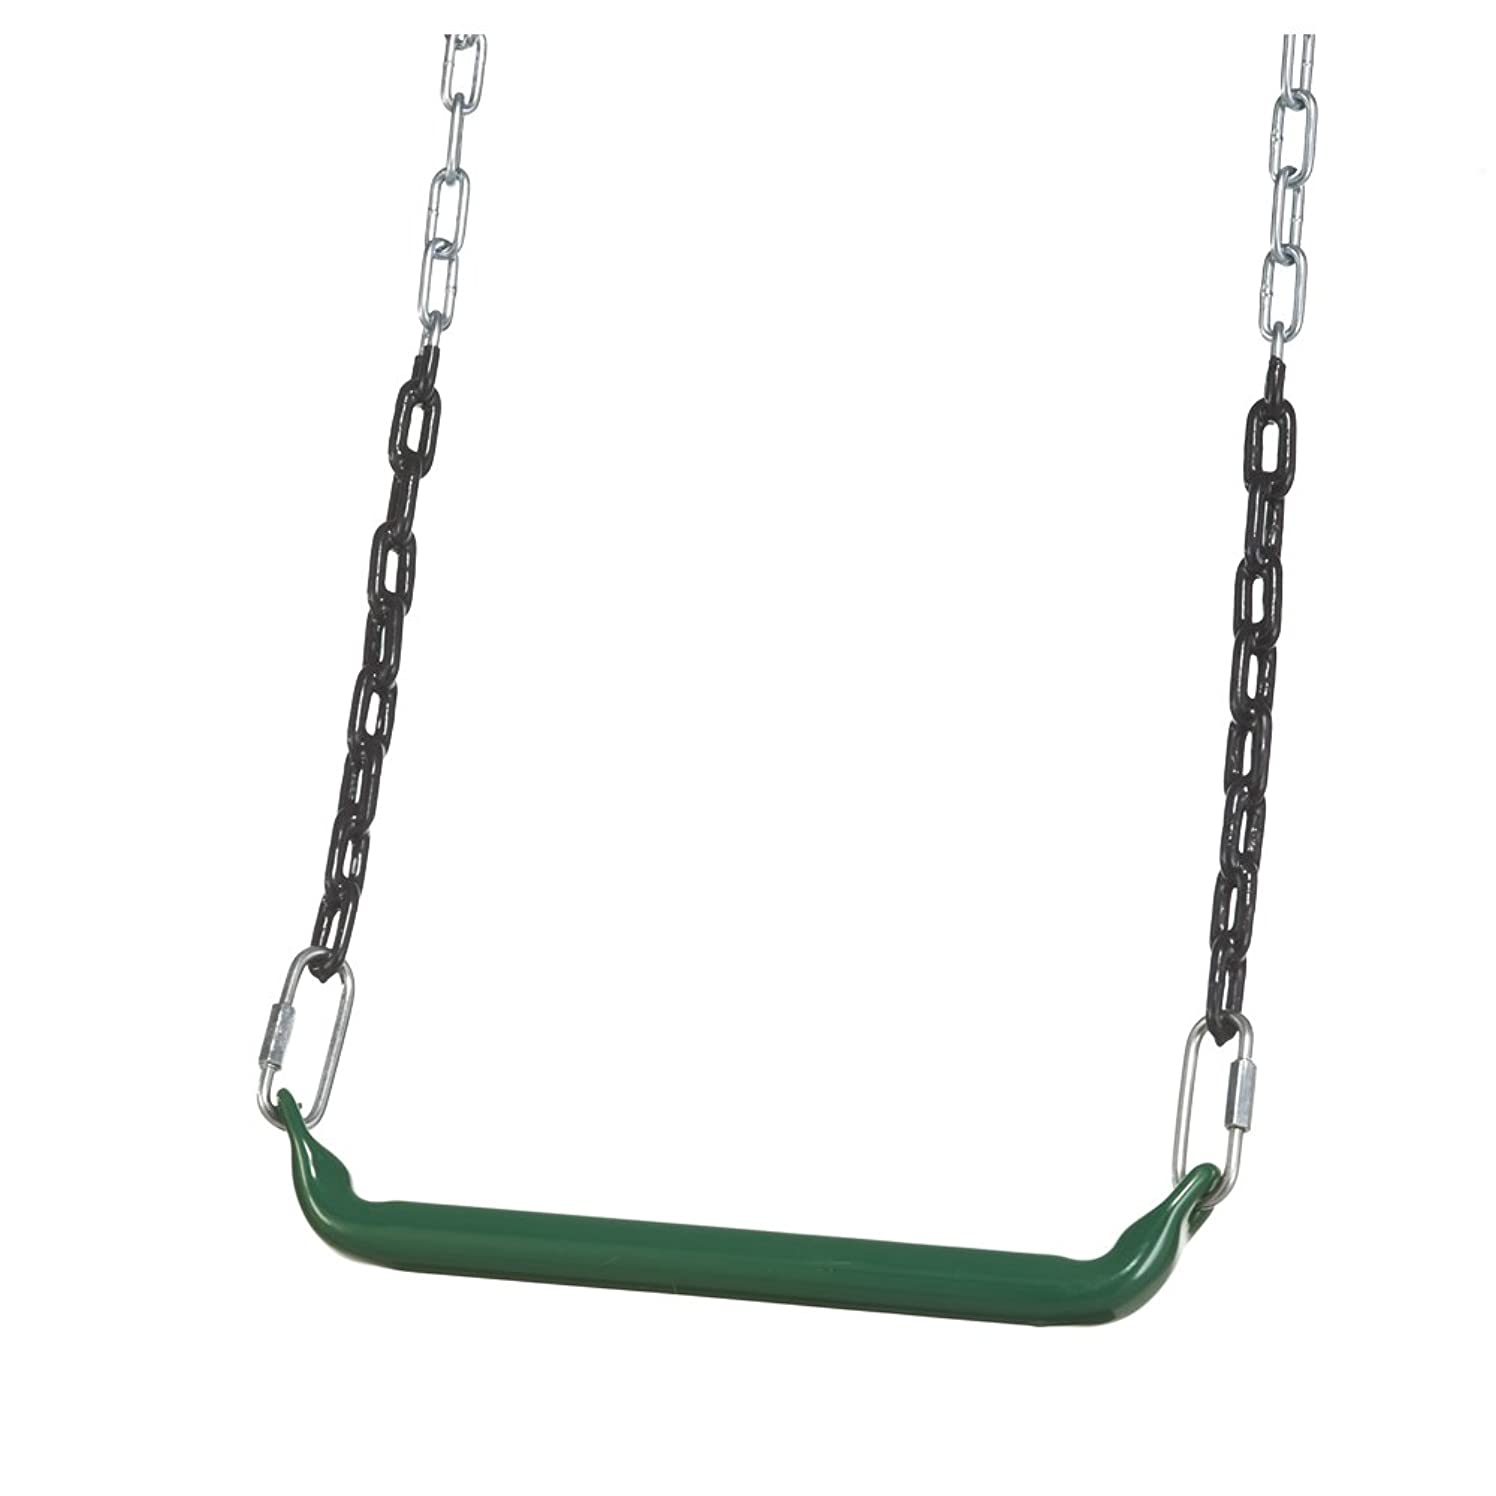 PlayStar C.G. Trapeze Bar with Chain and Hardware